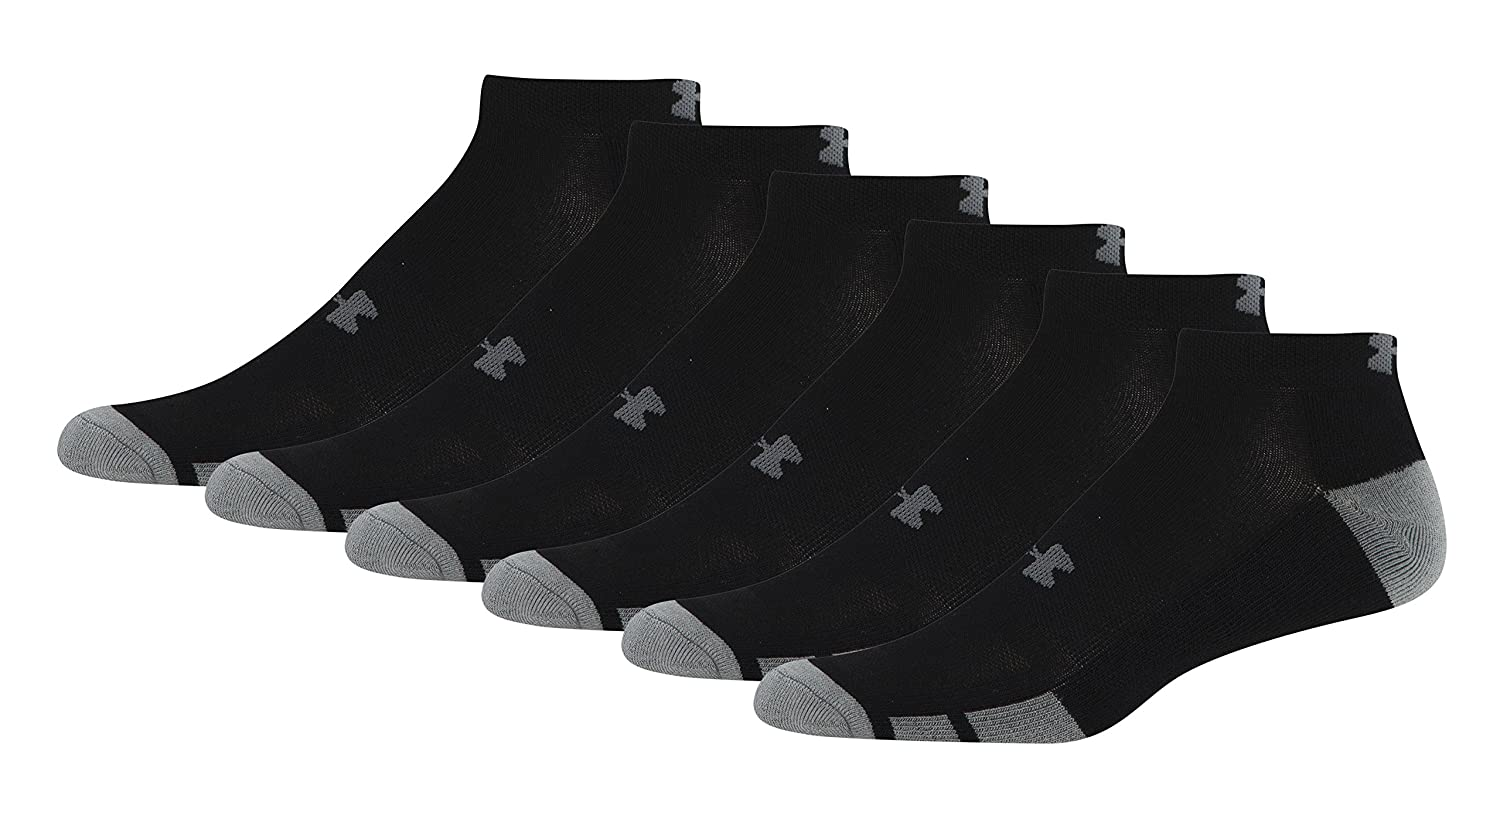 3ed8b69669f under armour socks men's white : Under Armour Men's Resistor Low-Cut Socks  (6